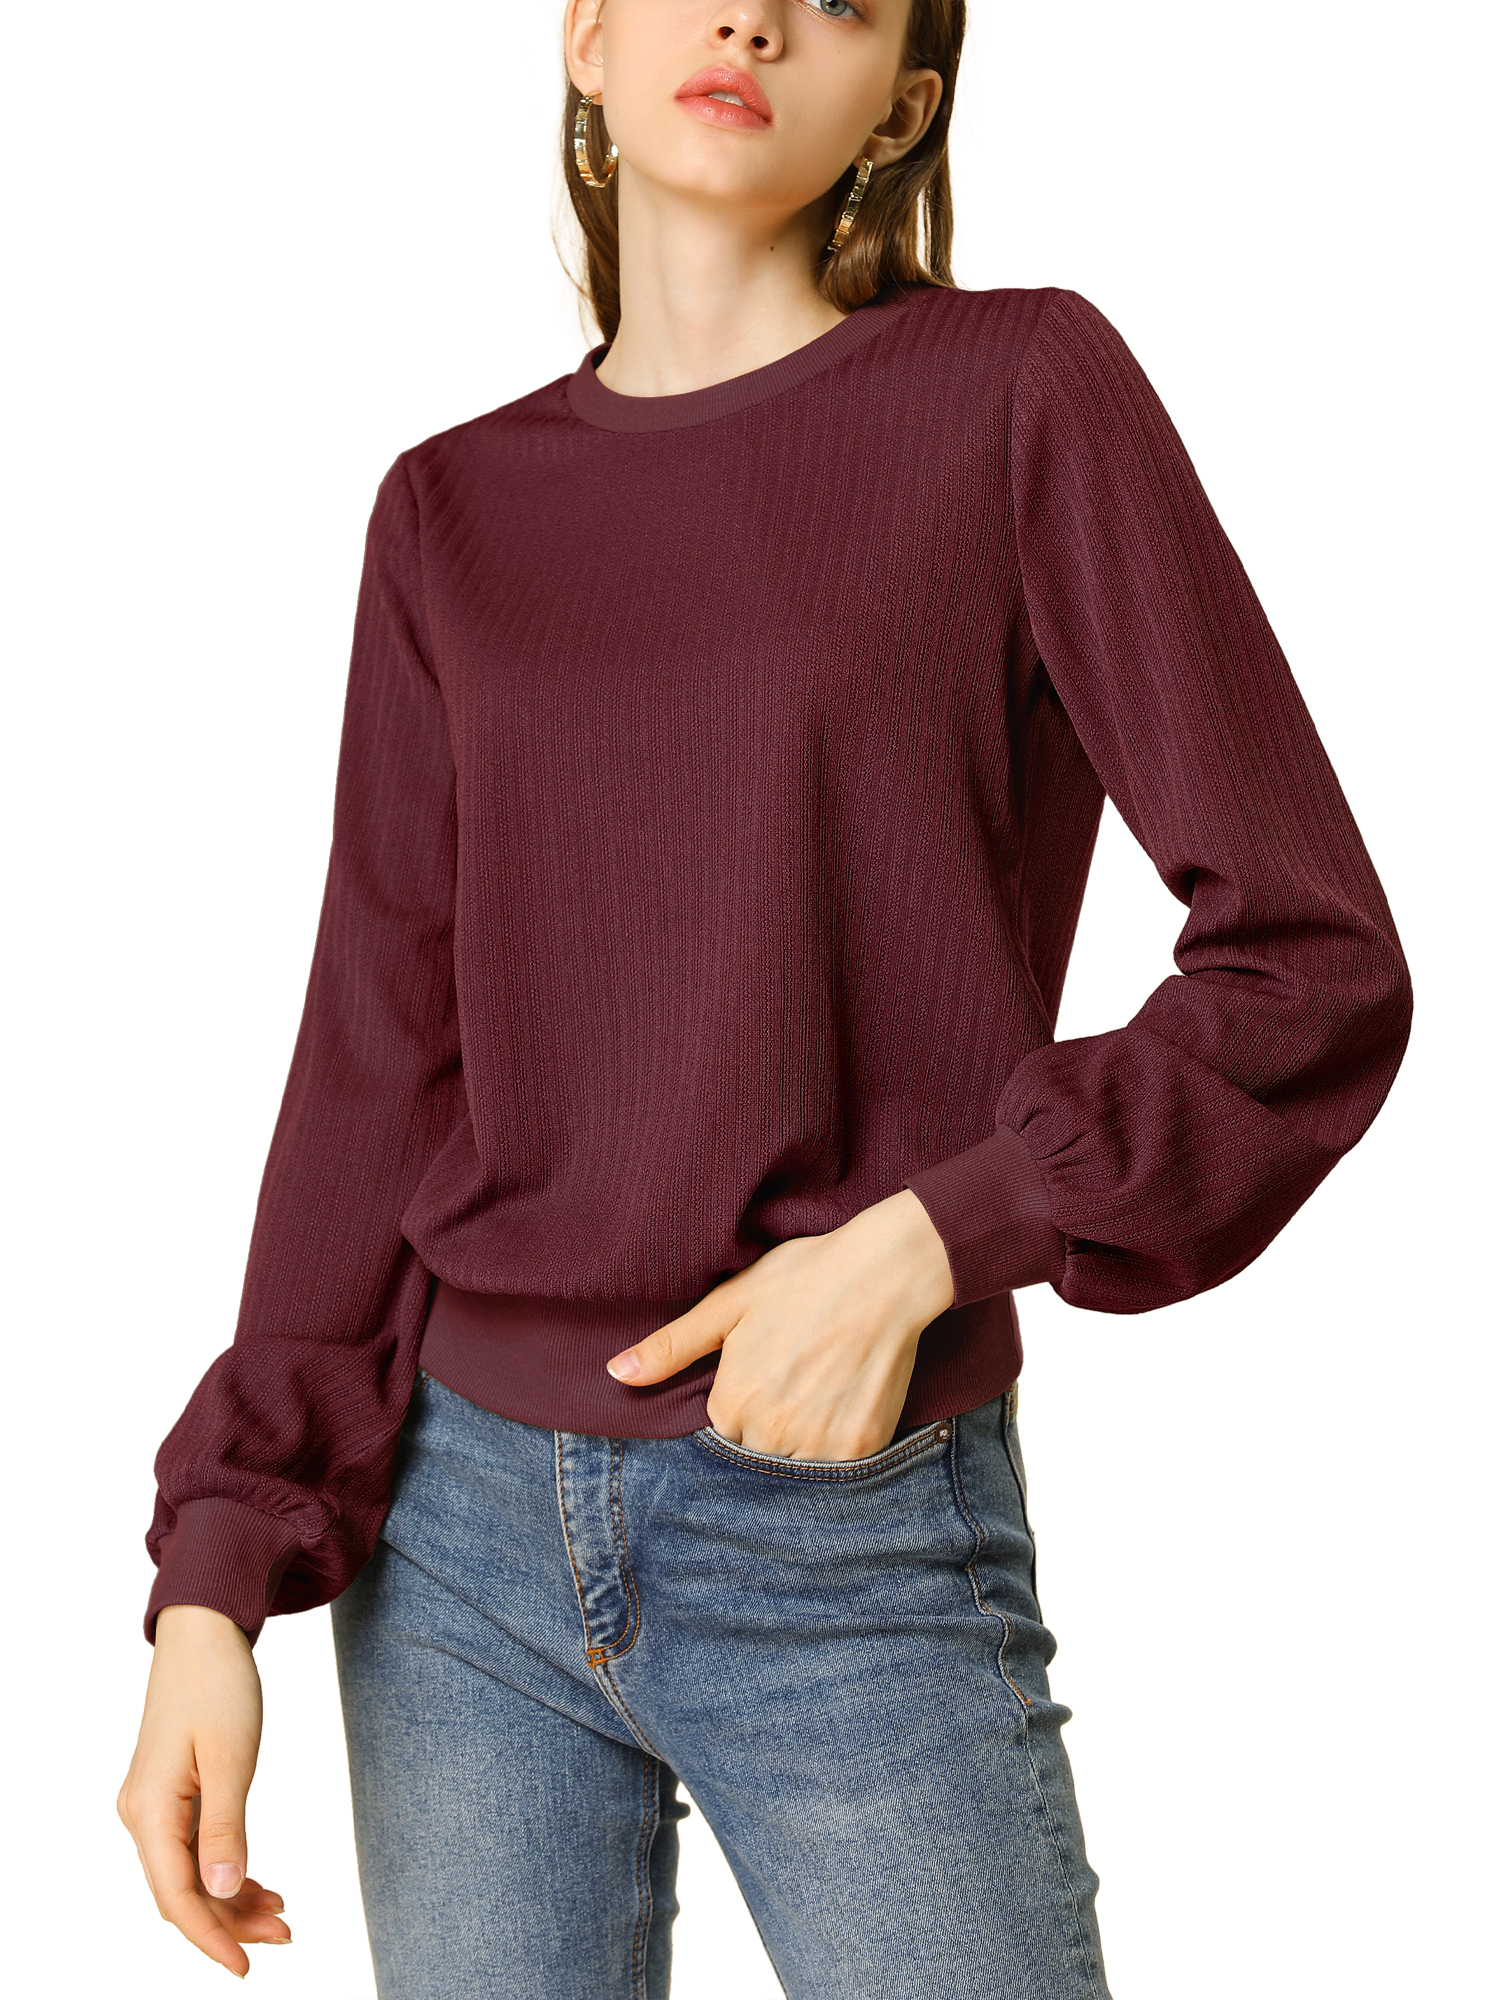 Allegra K Women's Lantern Sleeves Blouson Ribbed Top Sweater Burgundy L